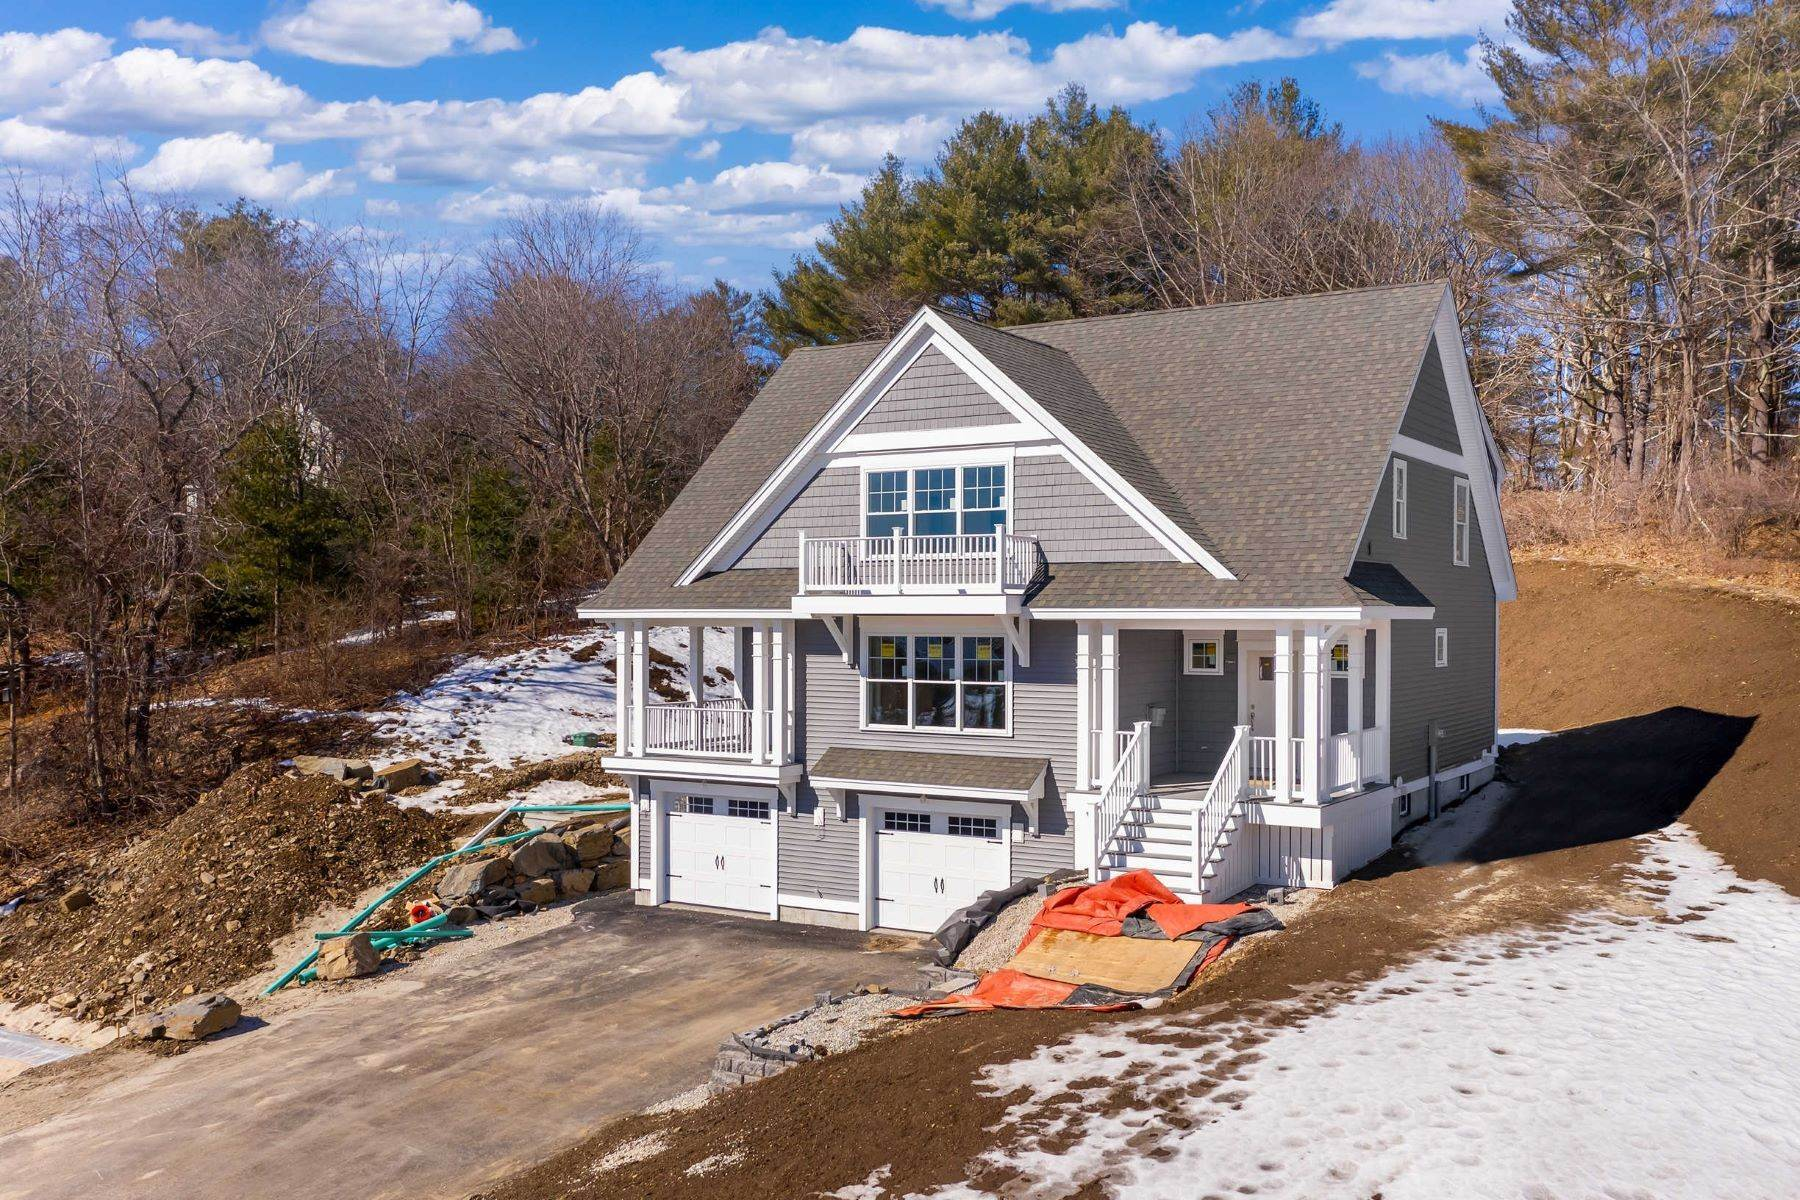 Single Family Homes for Sale at Custom To Be Built with Spruce Creek Views in Coveted Kittery Point Neighborhood 16 Heron Point Lane, Kittery, ME 03905